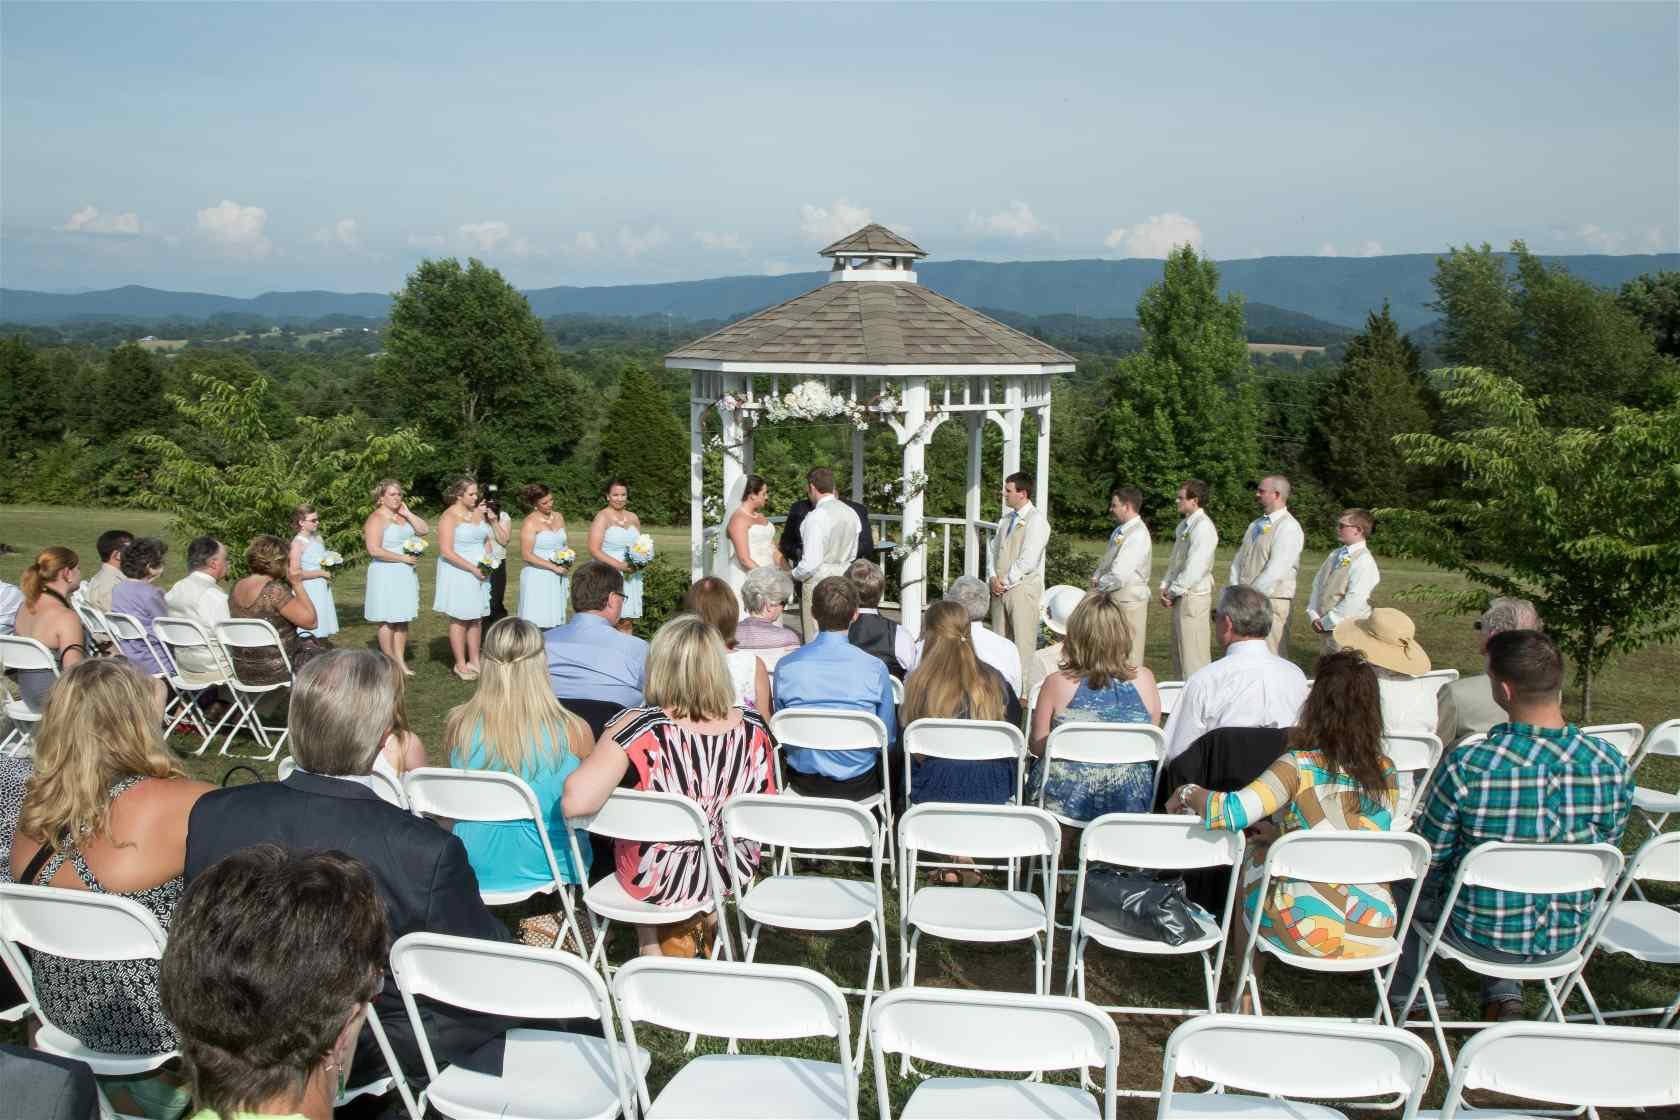 places to get married - Maryville DJs